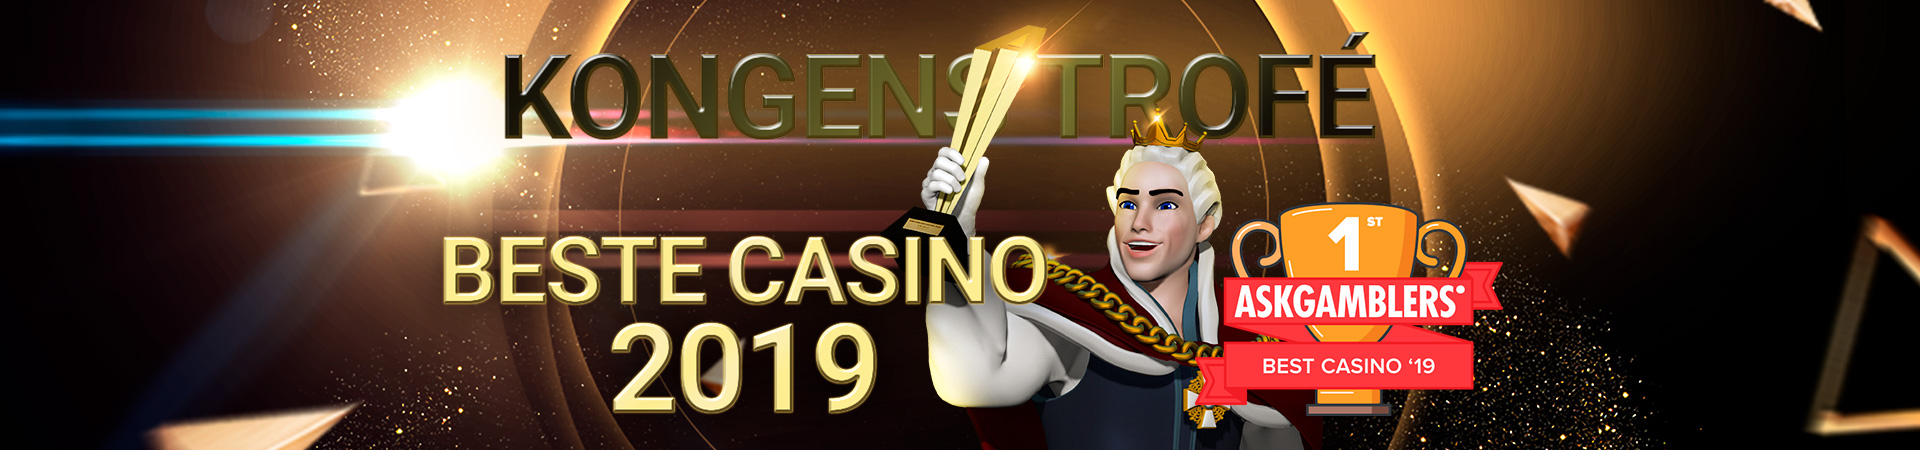 2020 07 King Billy Norwegian Best Casino 2019 1920x450